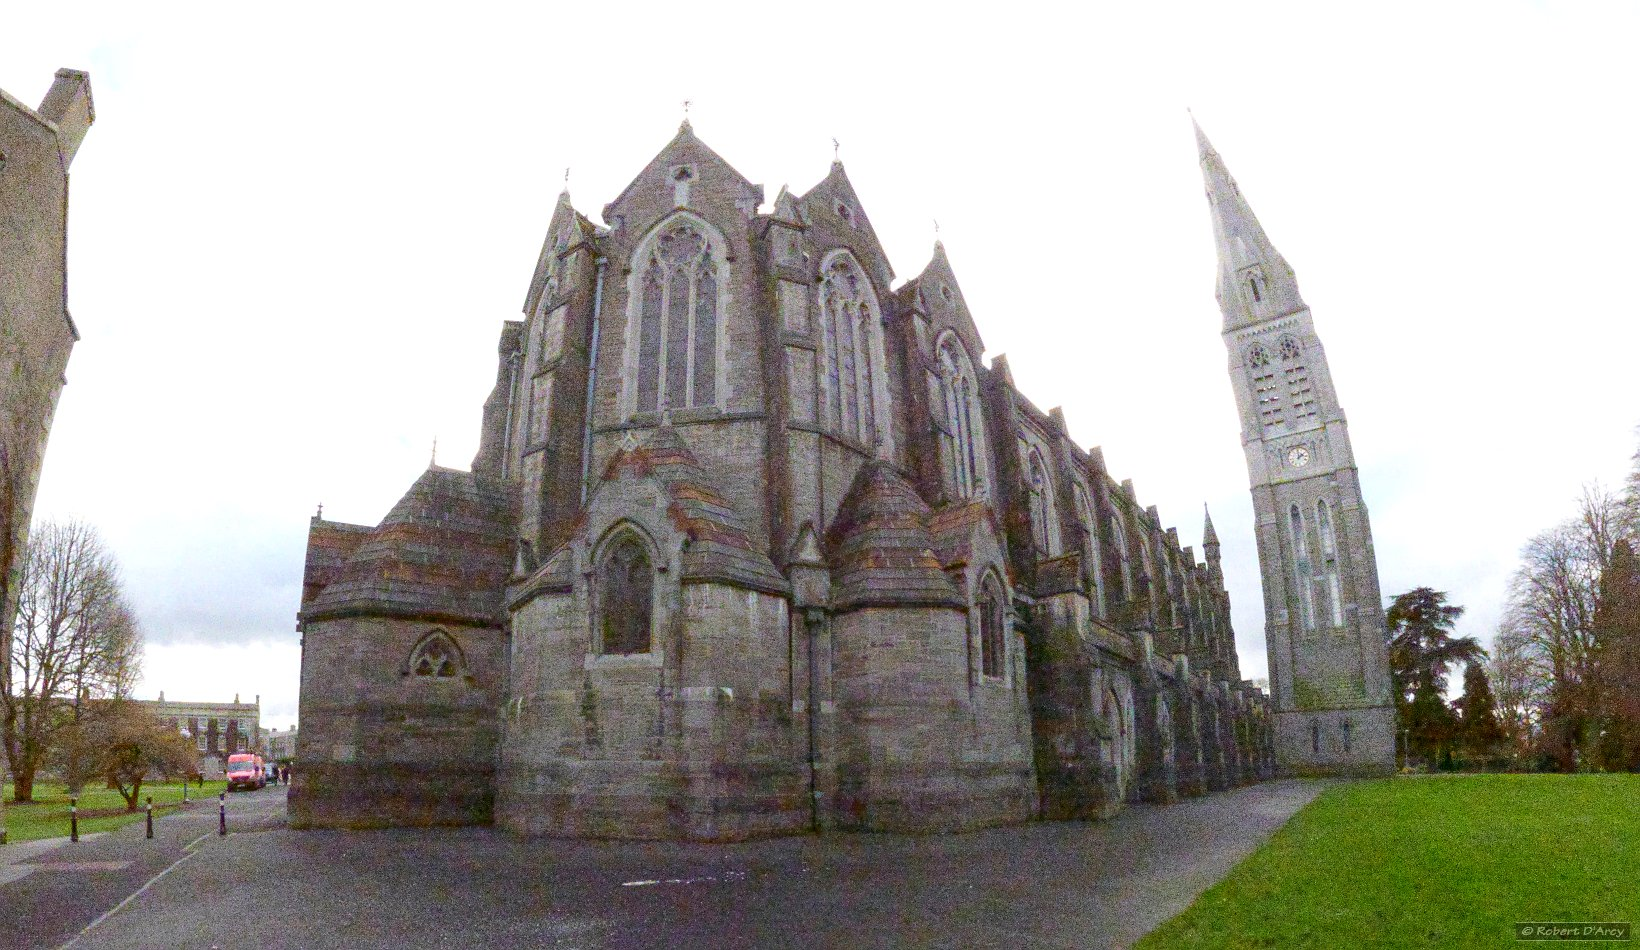 The college chapel seen from the outside